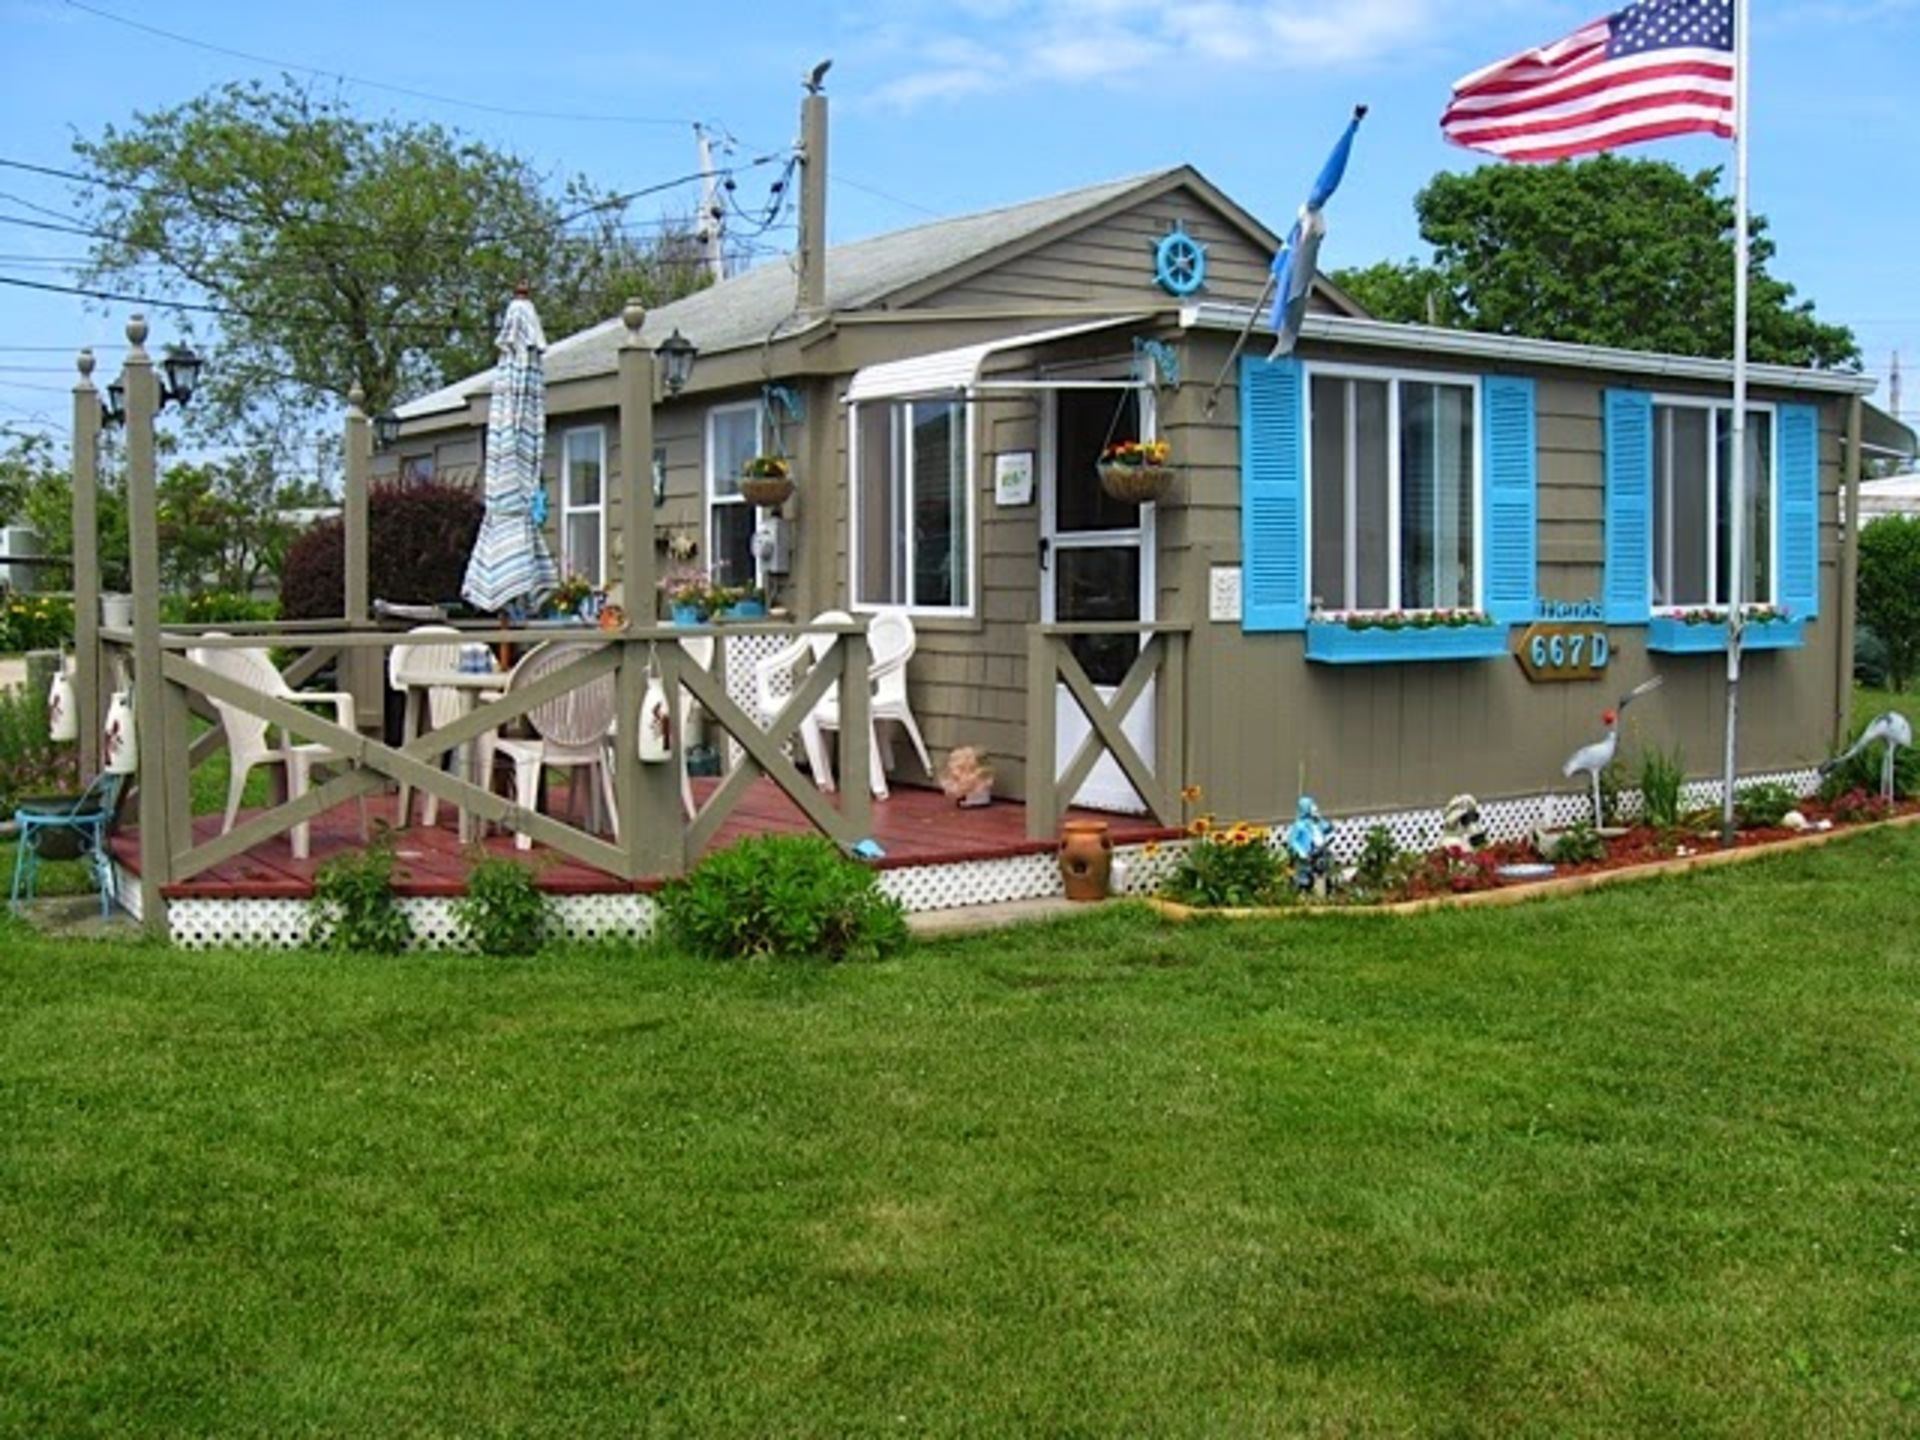 Summer 2017 Vacation Rental in East Matunuck, Weeks available